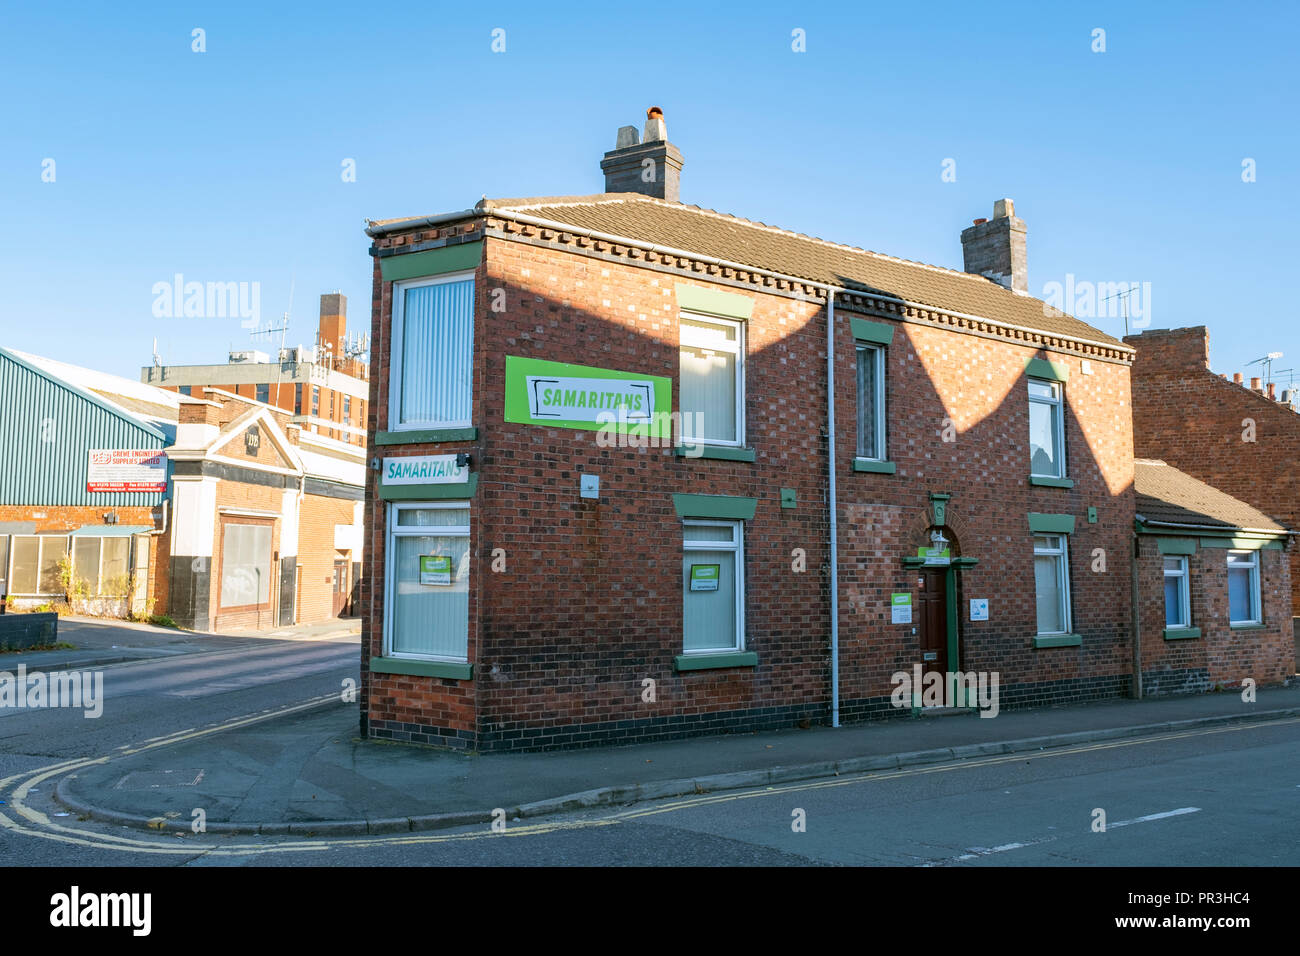 Samaritans office in Crewe Cheshire UK Stock Photo